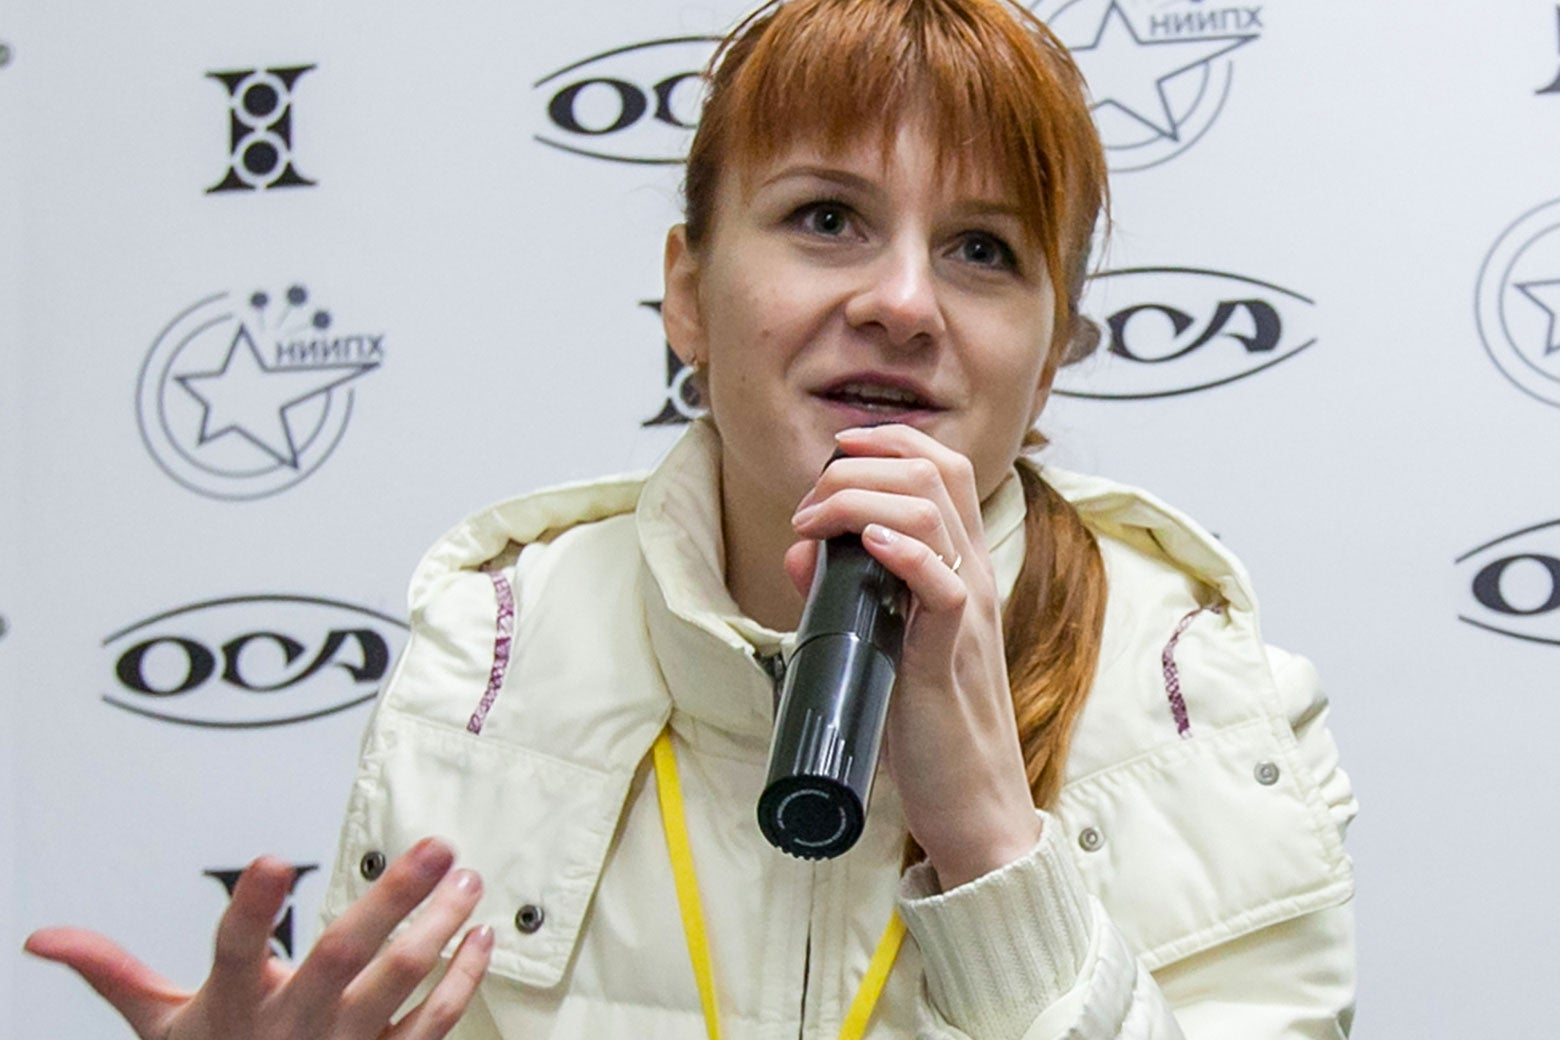 Mariia Butina speaks into a microphone at a press conference.